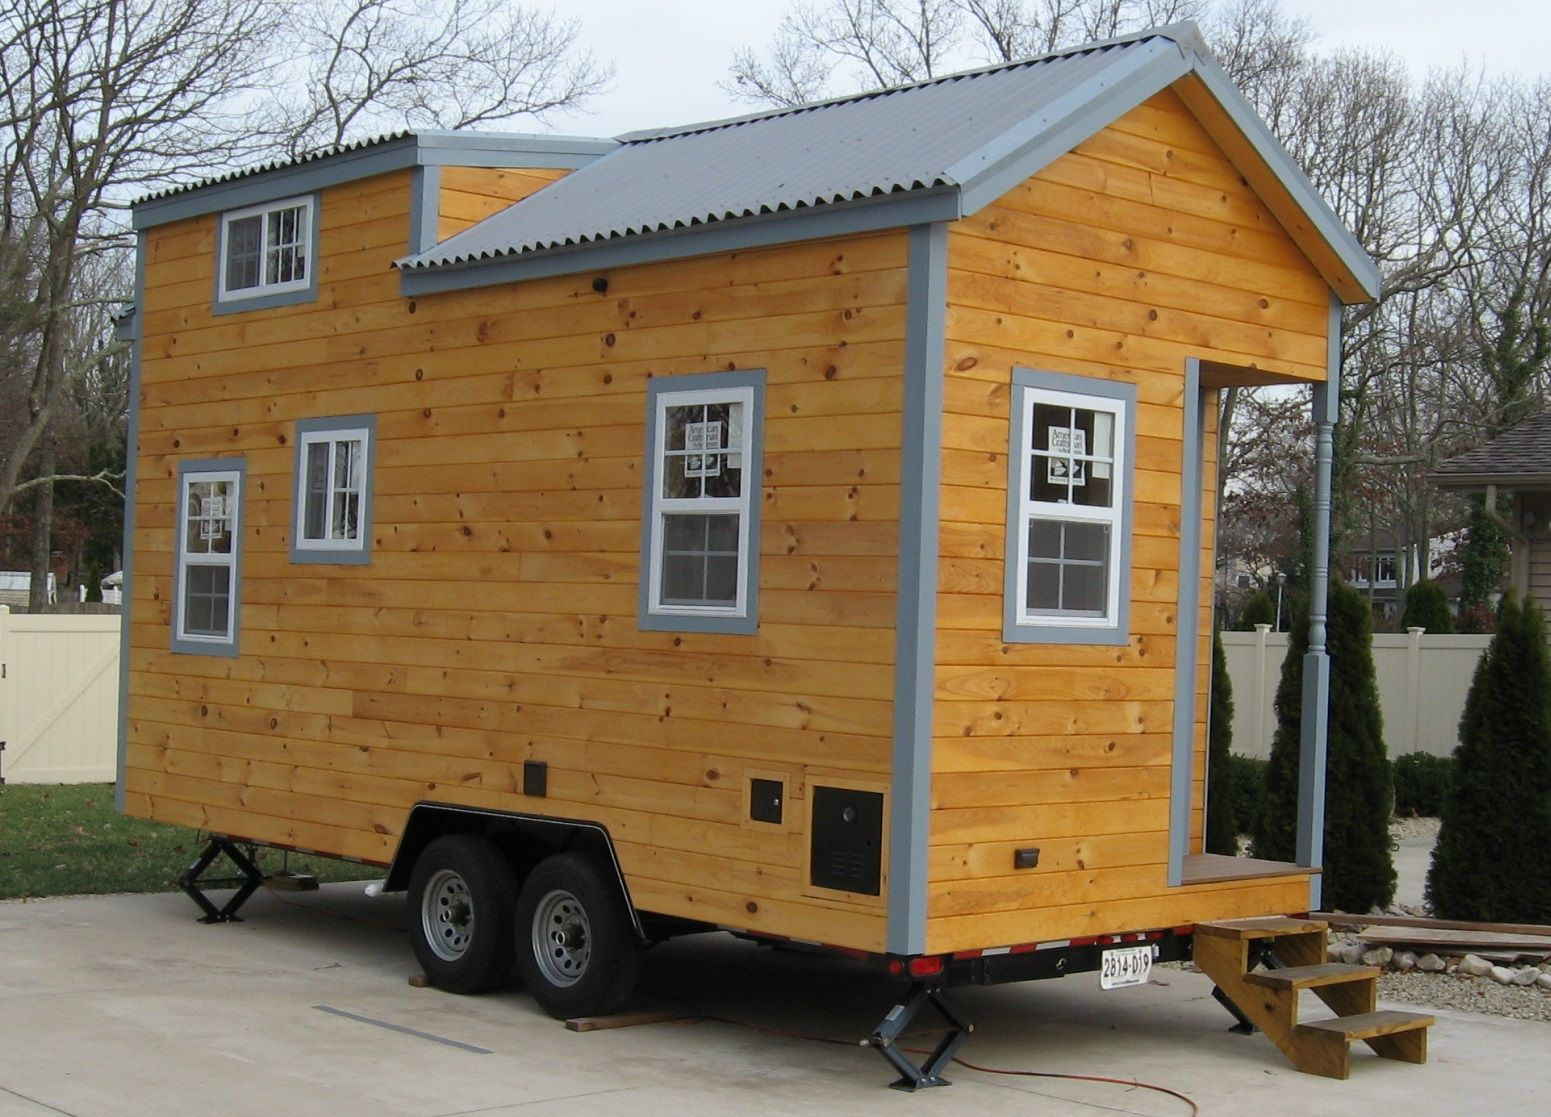 This is the Cassie Model THOW by NJ Tiny House that's for